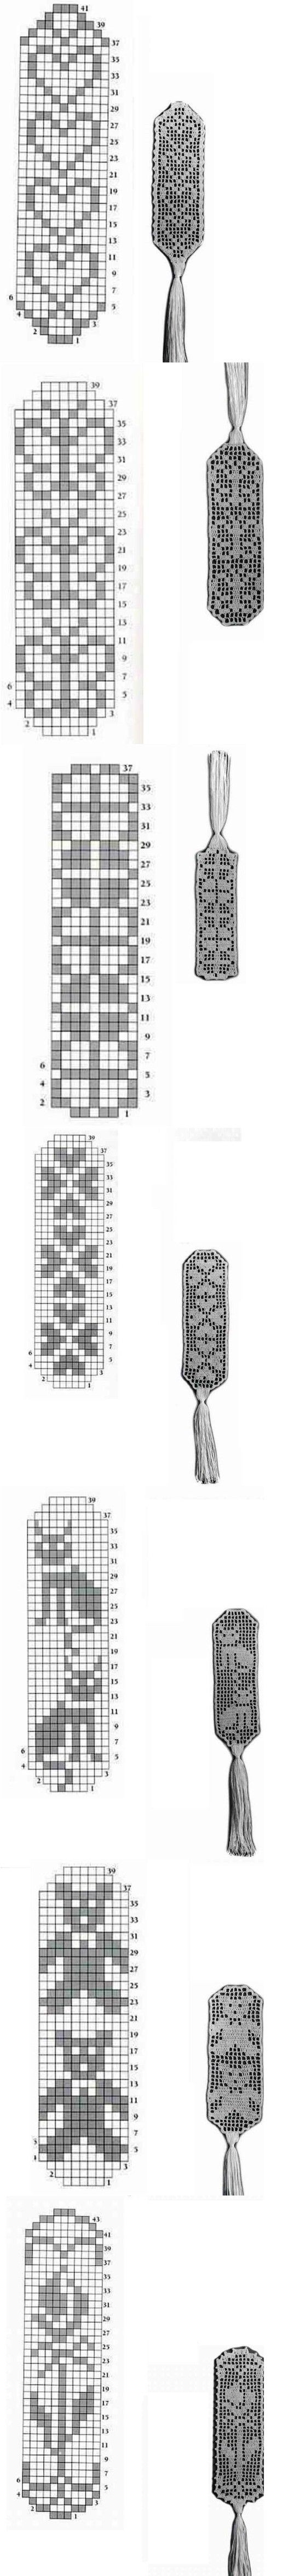 filet crochet - lovely bookmarks - easy-to-do present! (could use as ...